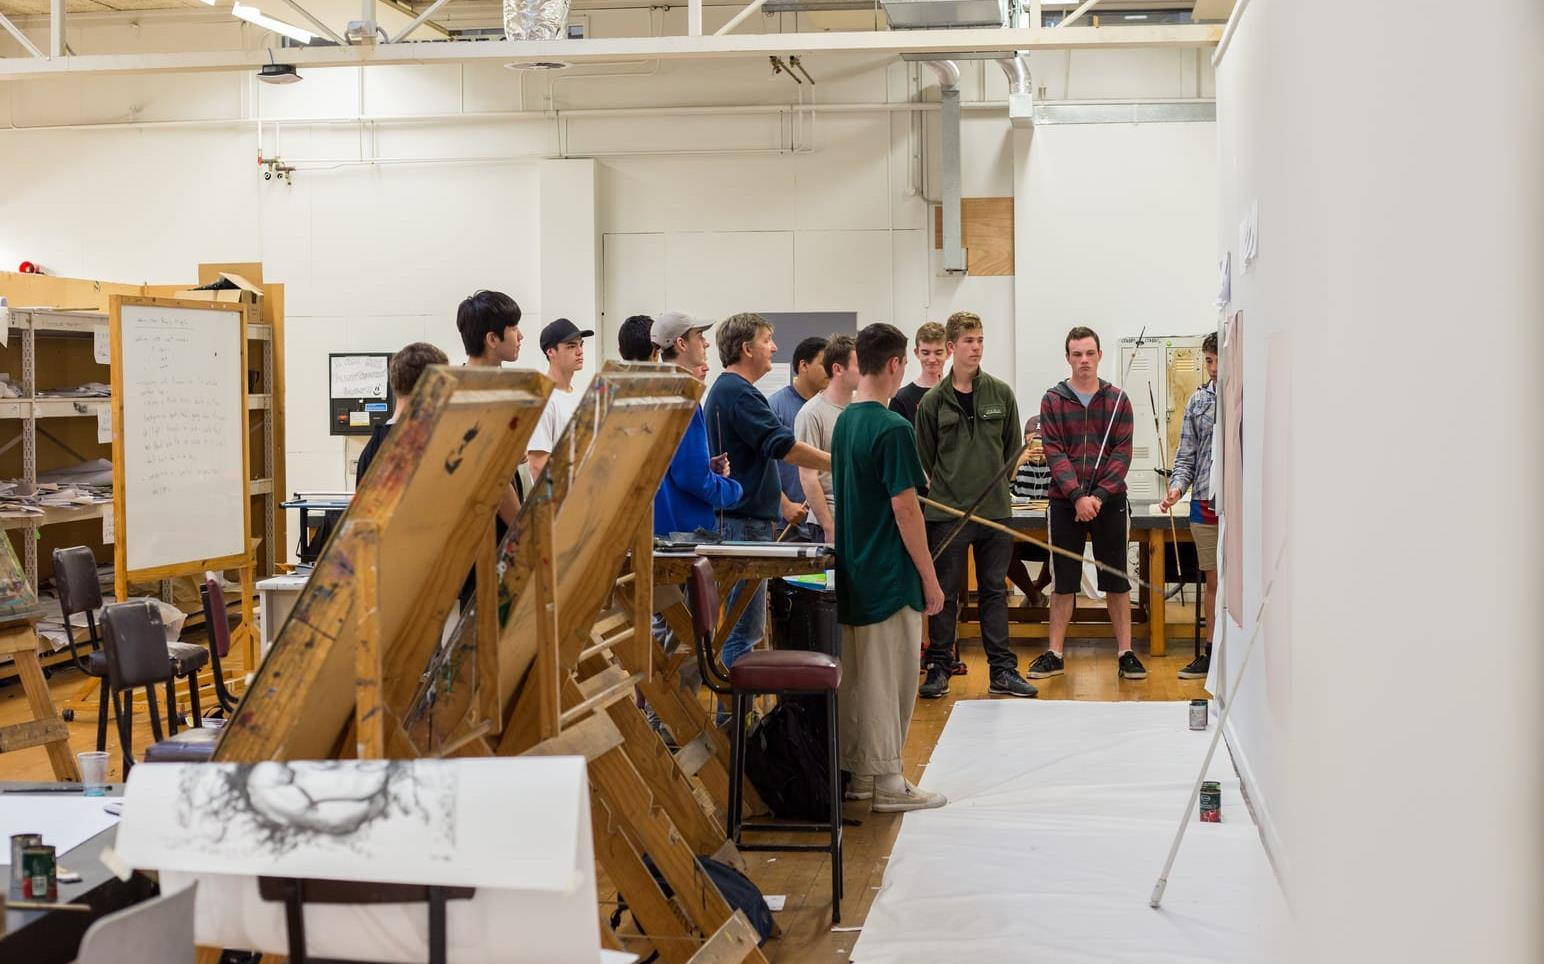 Secondary School students taking part in arts exercise in studio